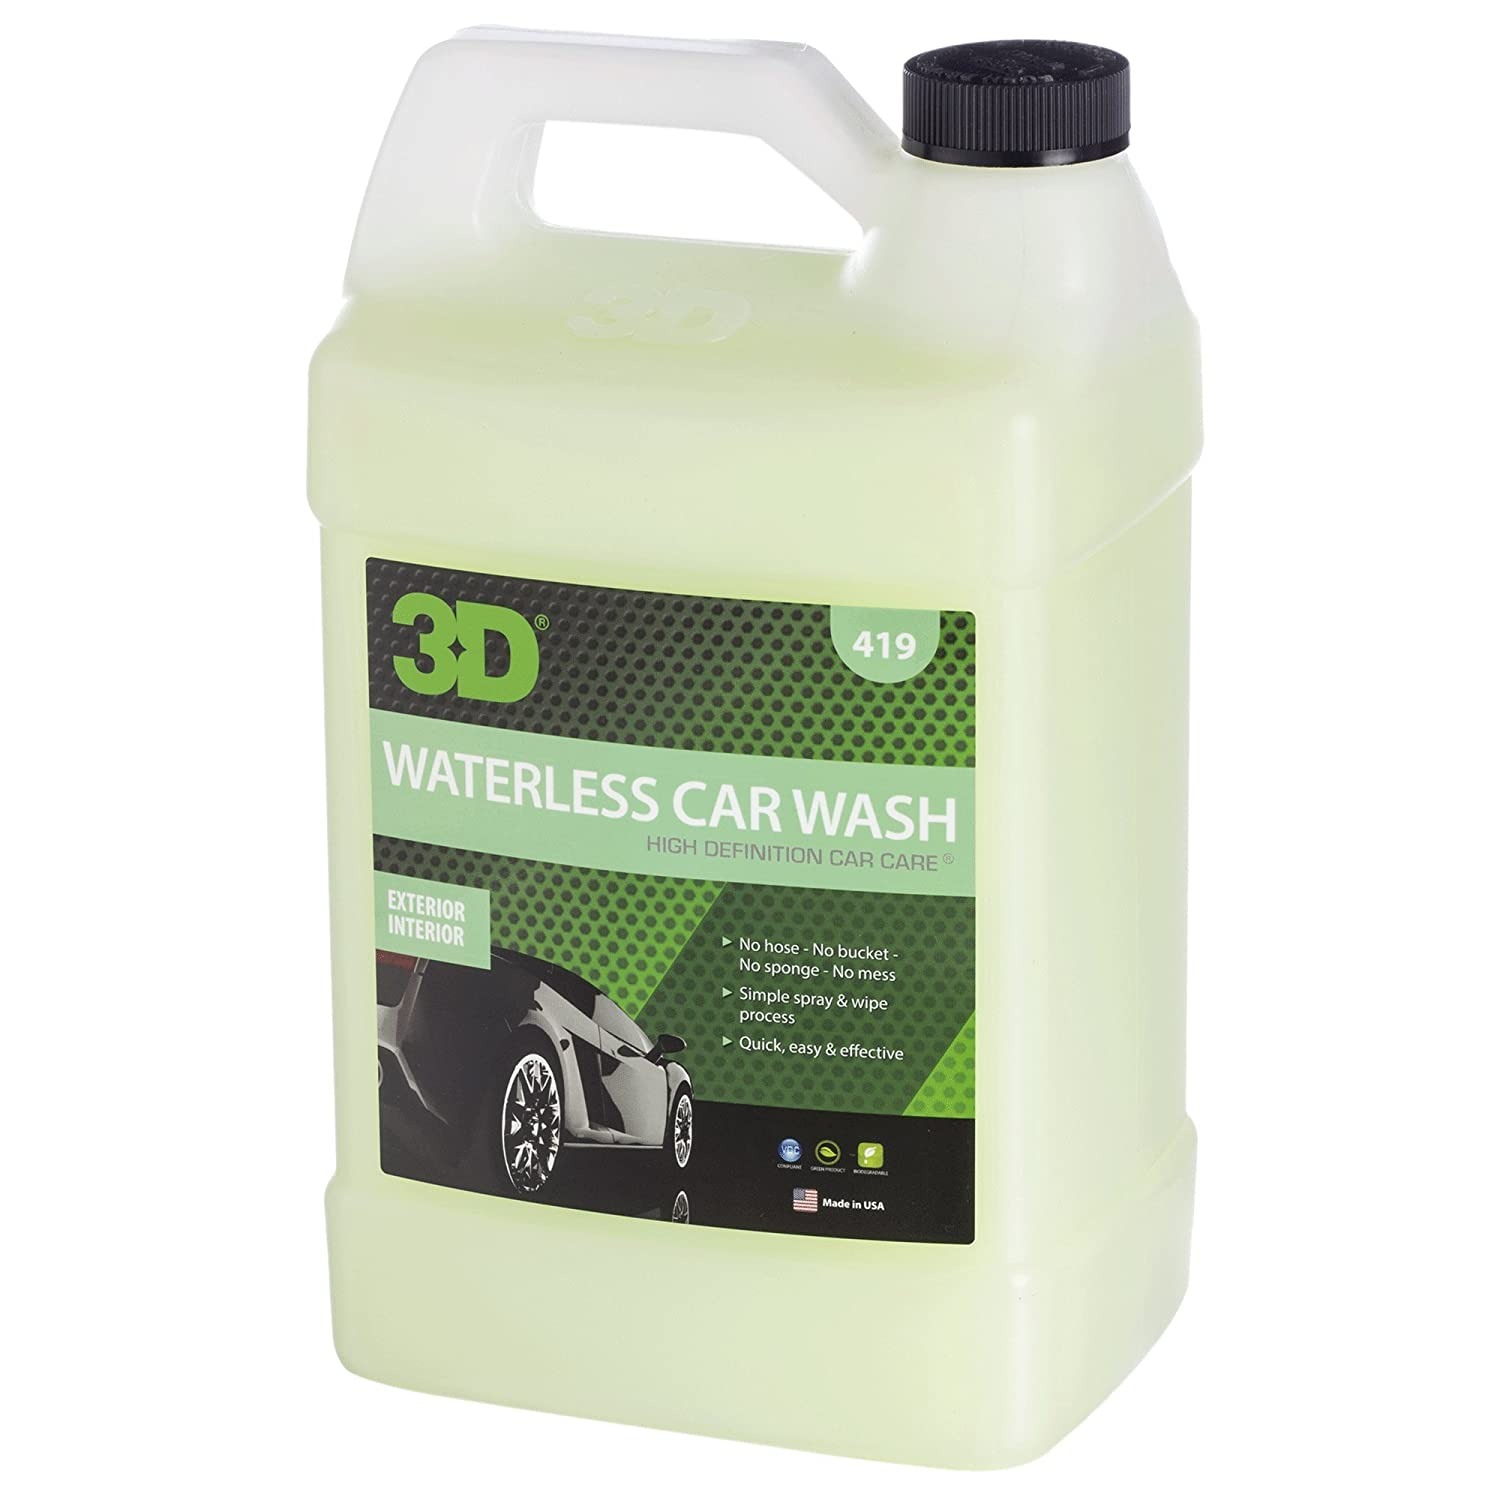 3d Waterless Car Wash 1 Gallon Spray On Easy Express Clean Environmentally Friendly Biodegradable Auto Care Made In Usa All Natural No